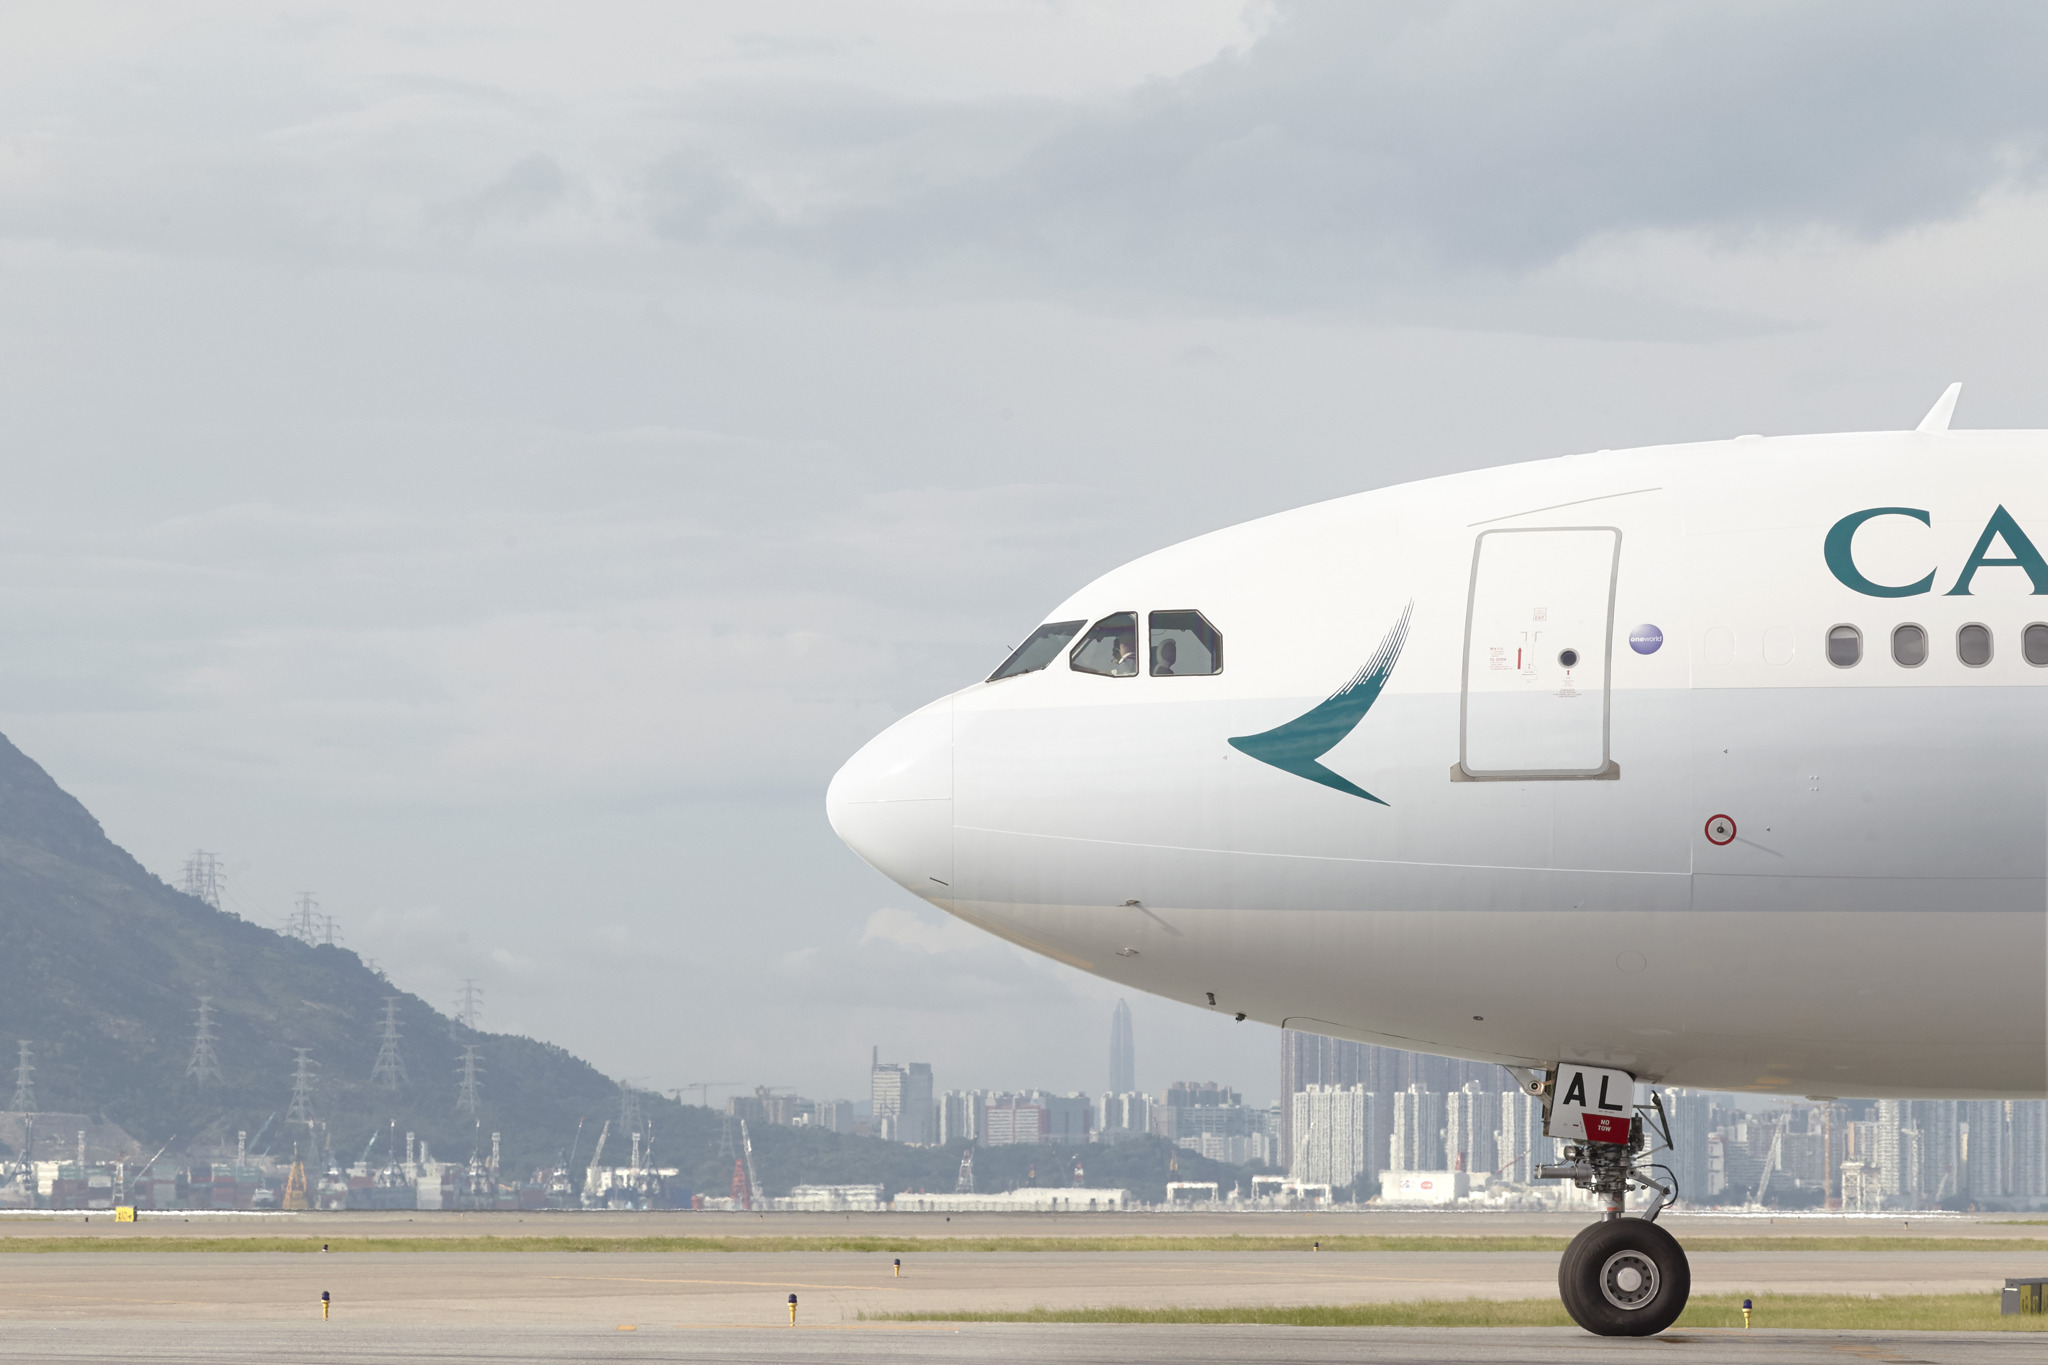 Cathay Pacific Group Fact Sheet - Cathay Pacific